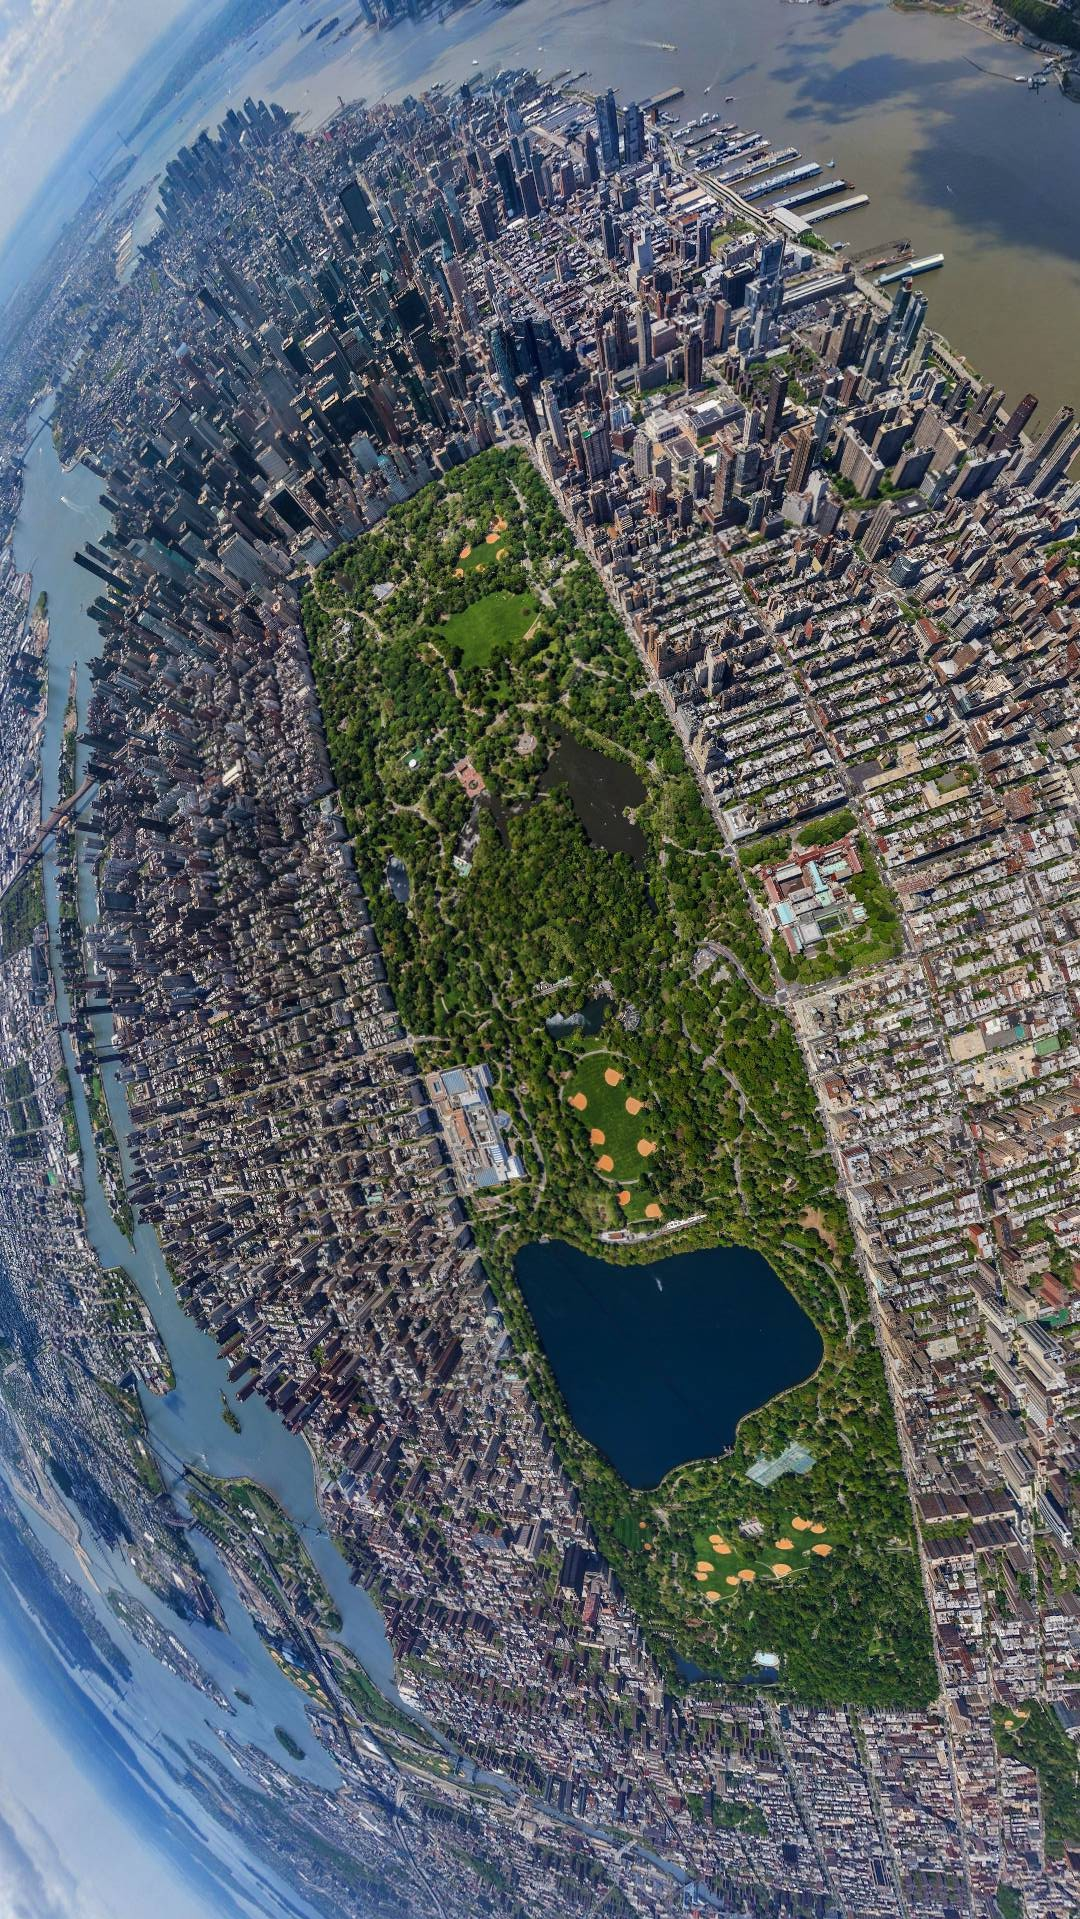 Cute Wallpapers For Girls For Computer Central Park New York City Sky View Iphone Wallpaper